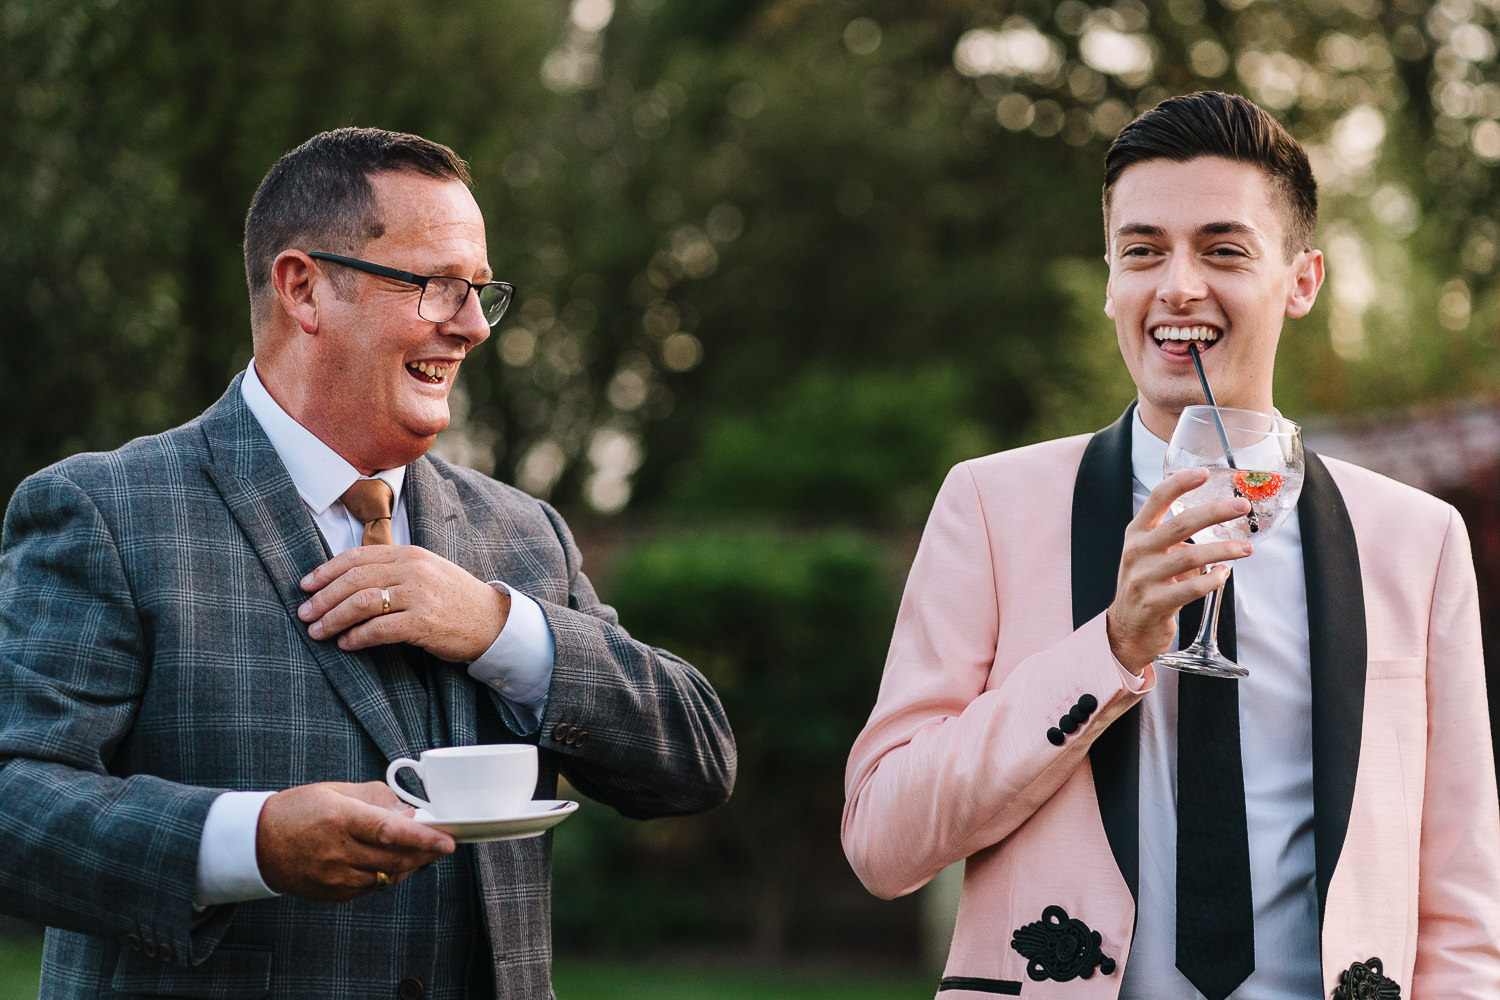 Two guests laughing and drinking